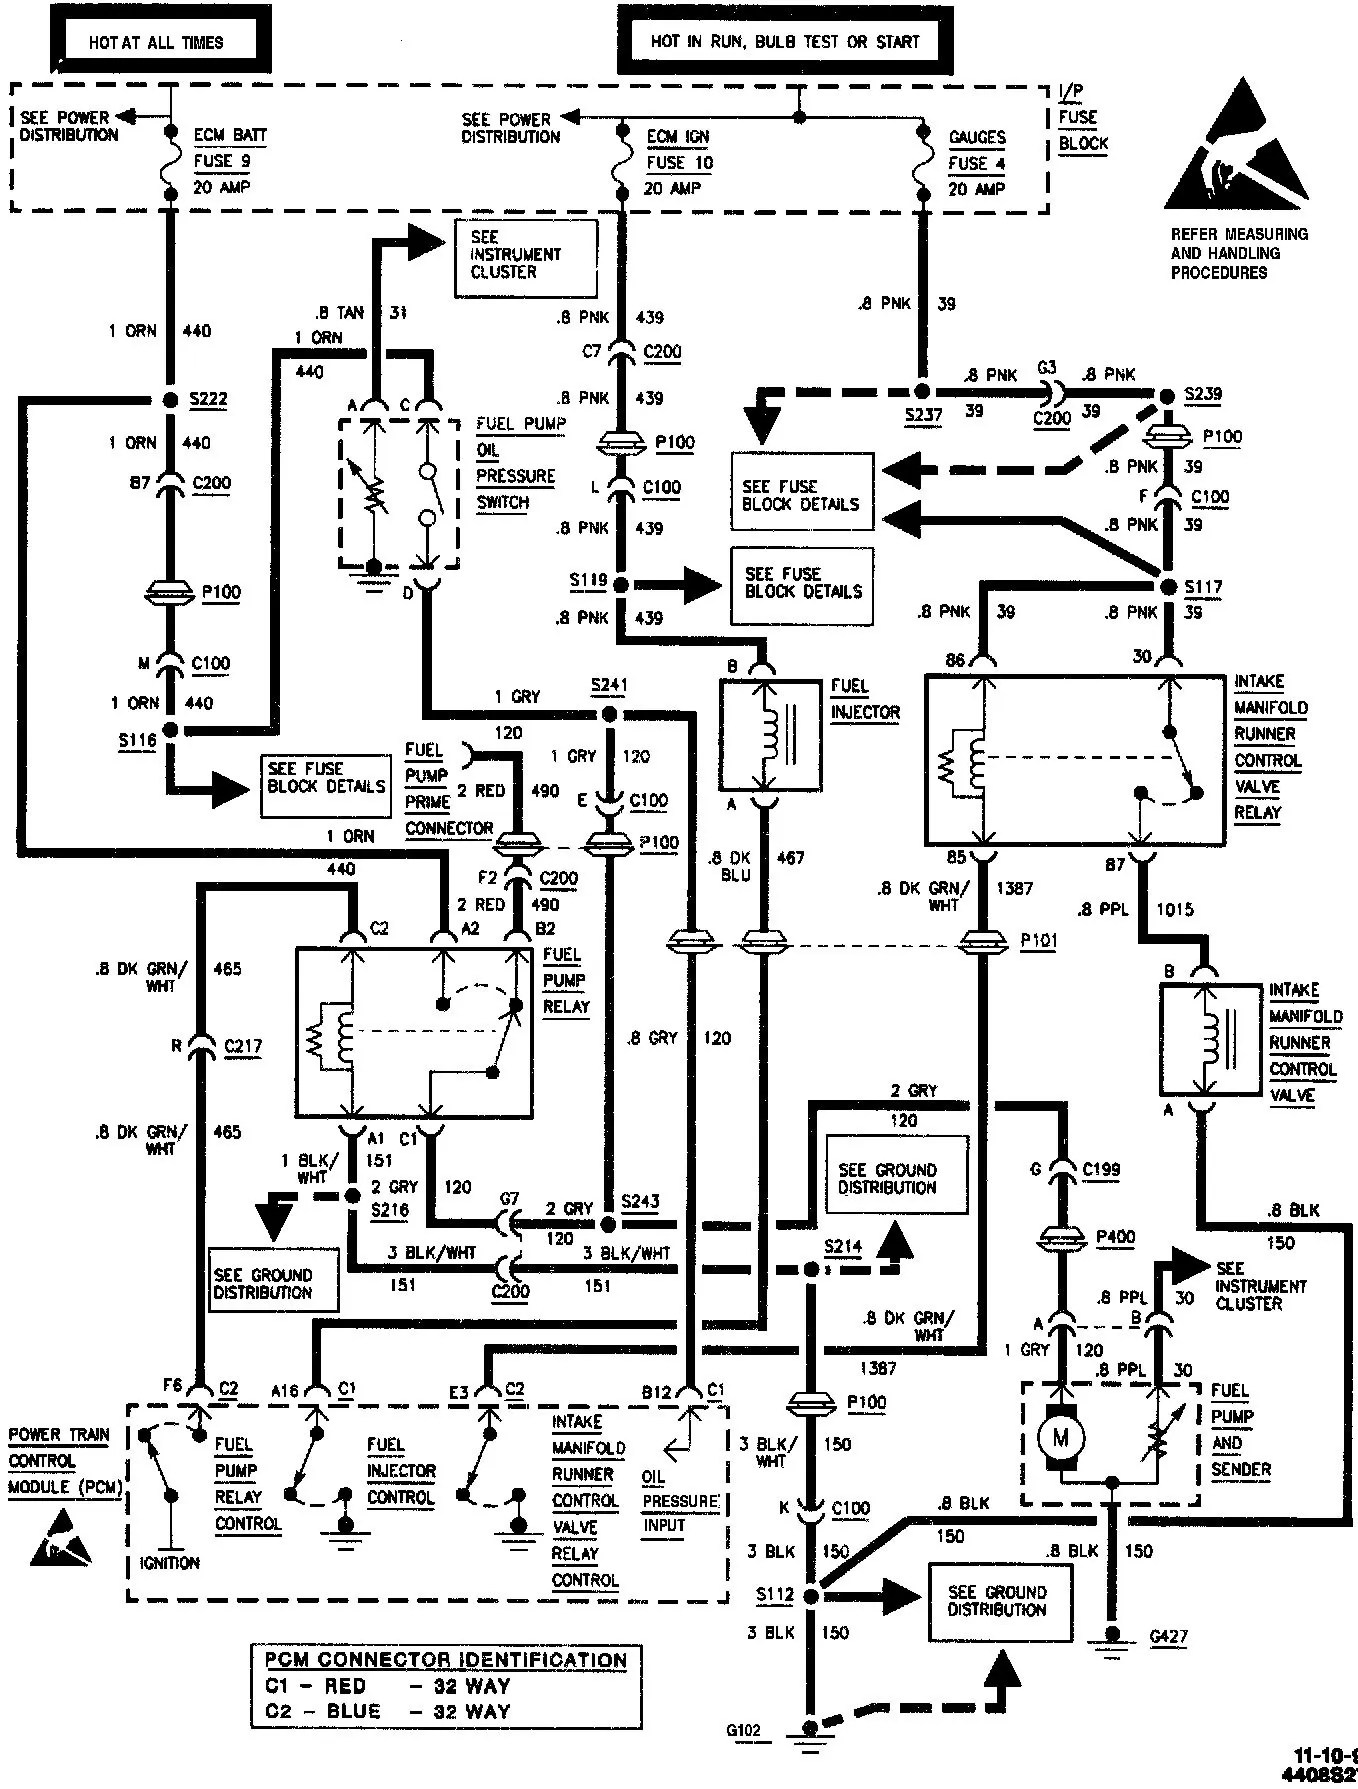 hight resolution of chevy s10 engine wire harness wiring diagram 2000 s10 wiring harness diagram s10 wiring harness